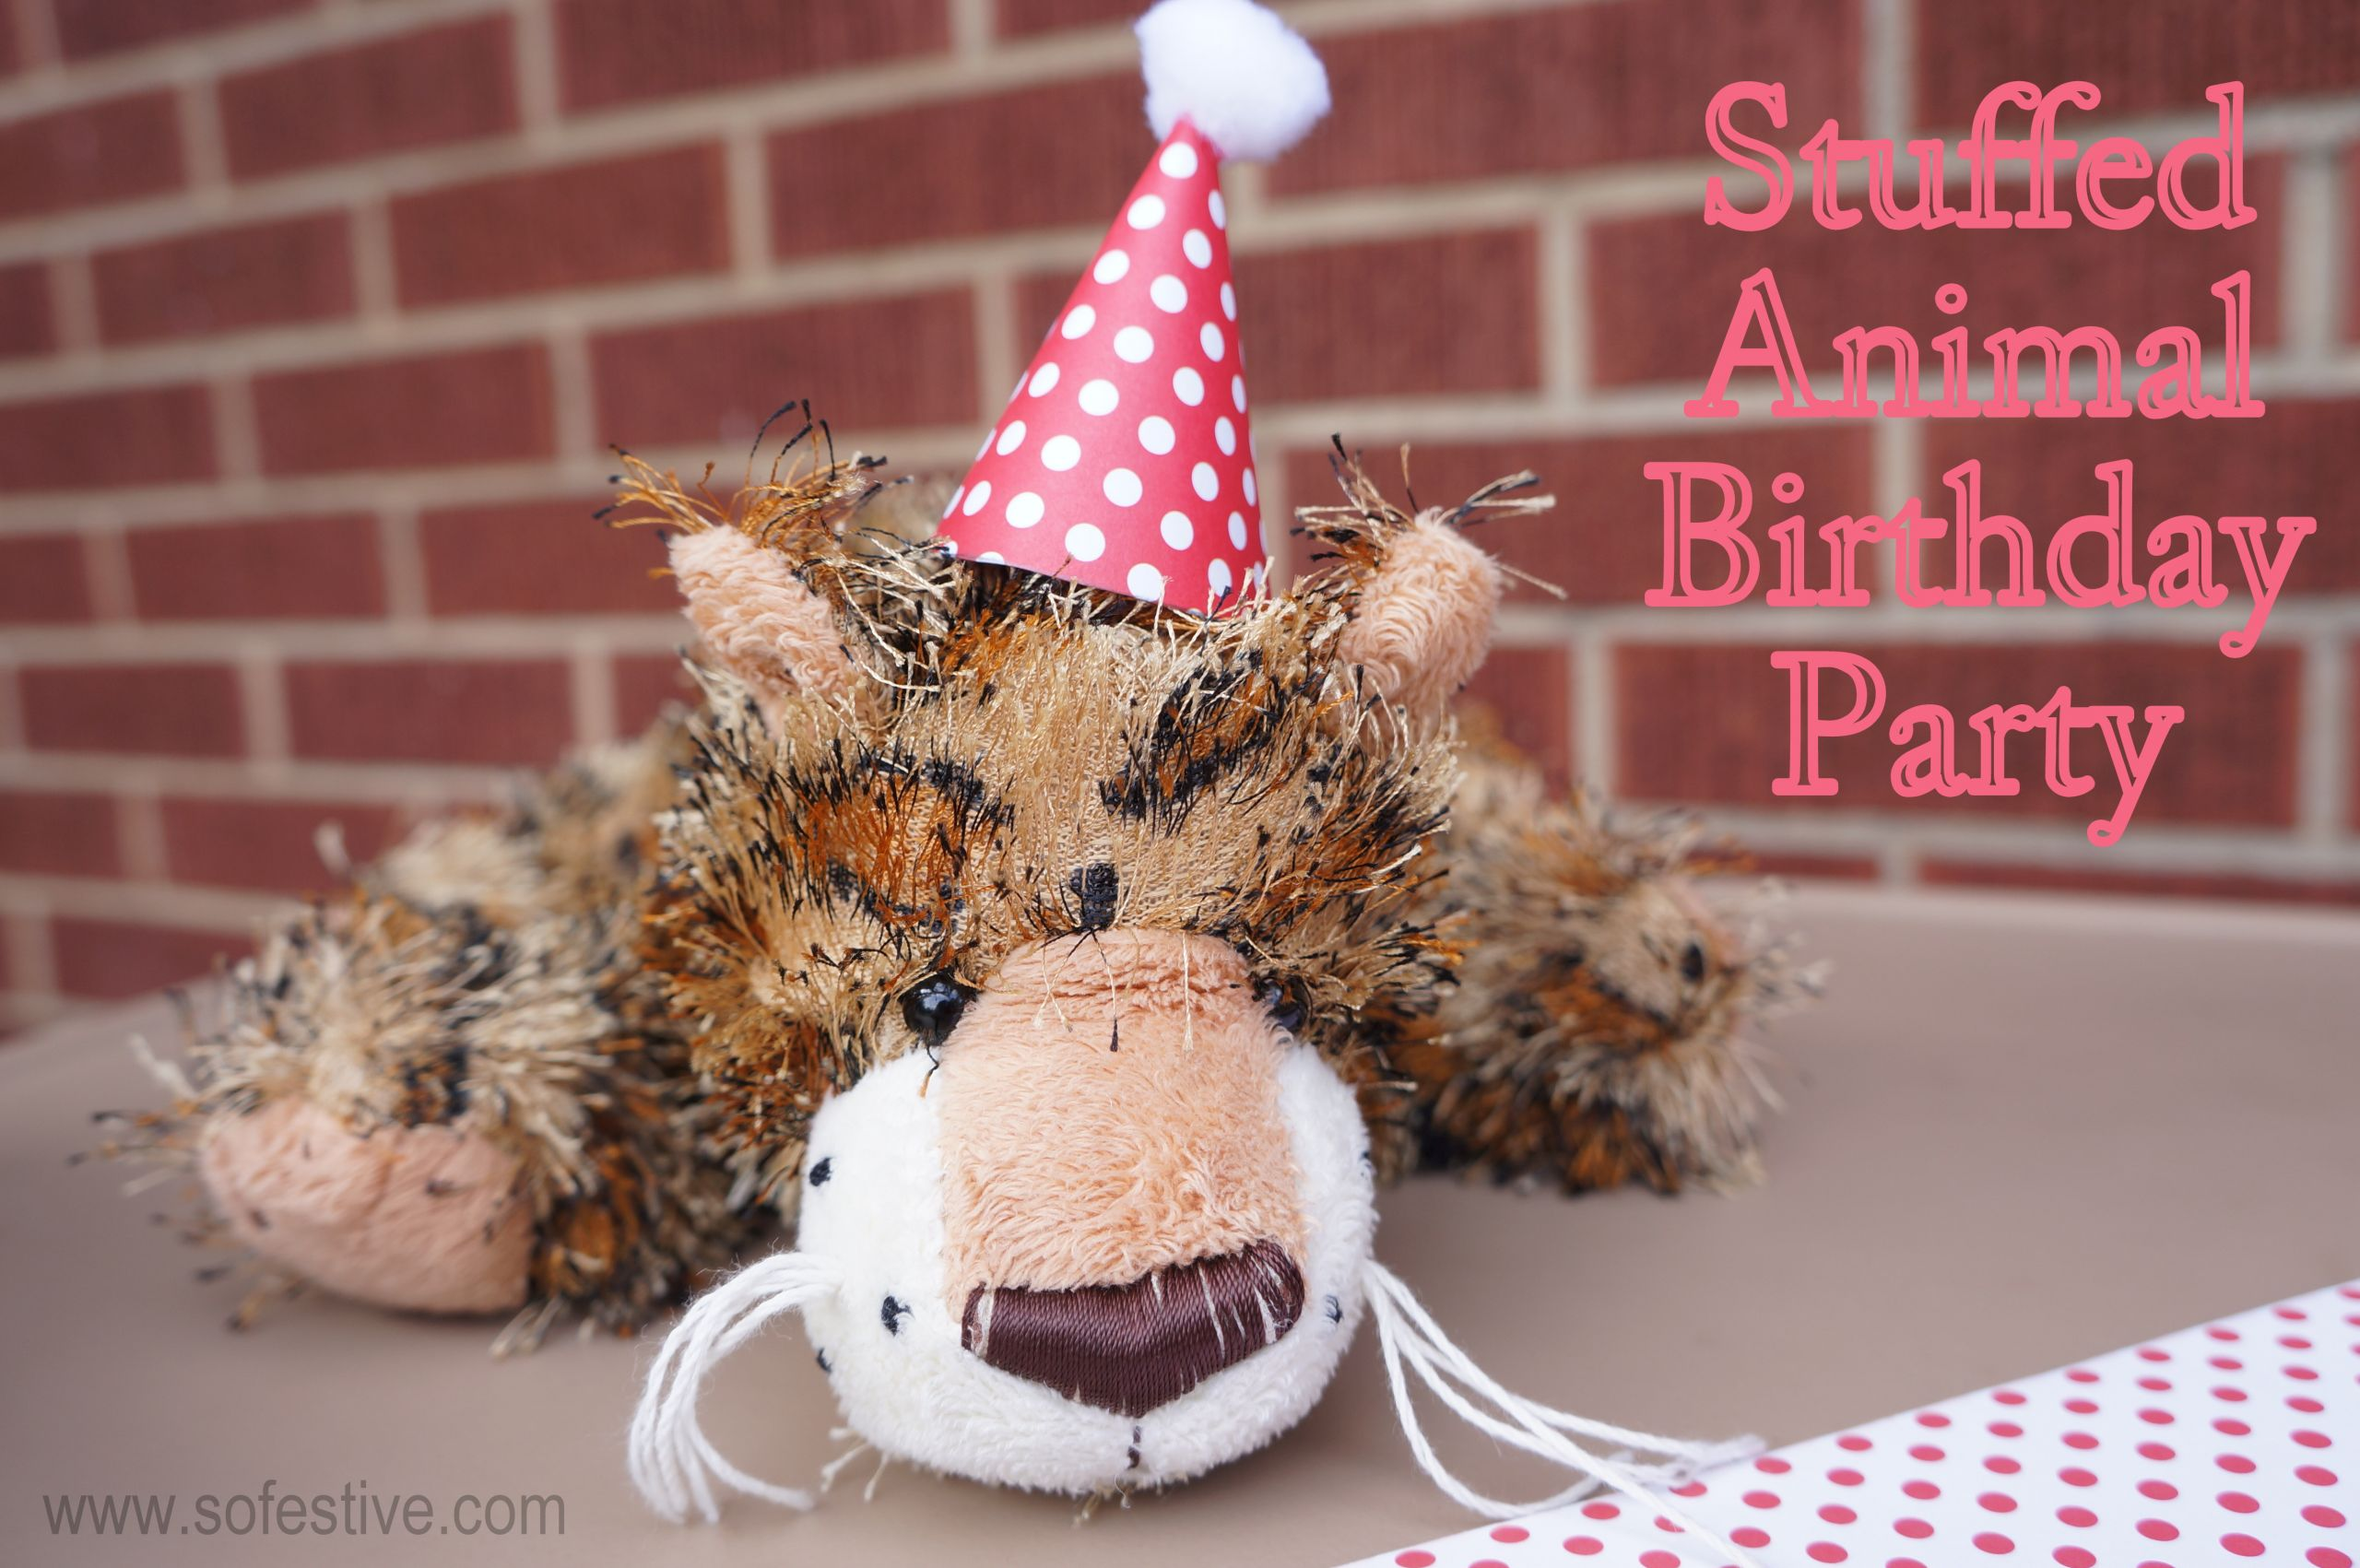 Animals For Kids Party  Stuffed Animal Birthday Party for Kids So Festive